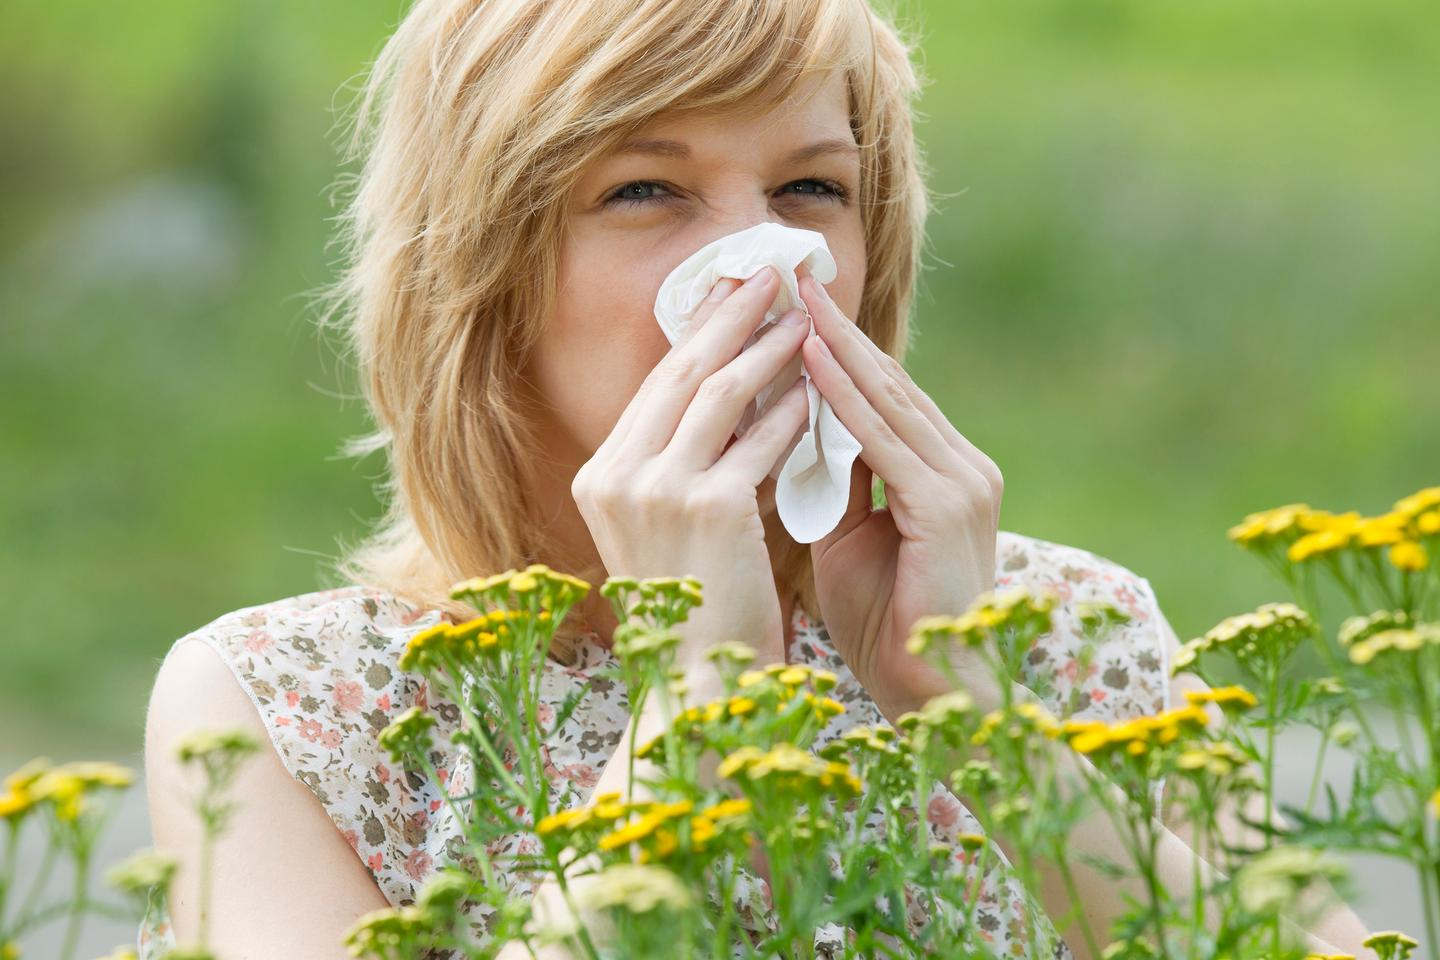 Climate change may be making pollen season worse, says new study